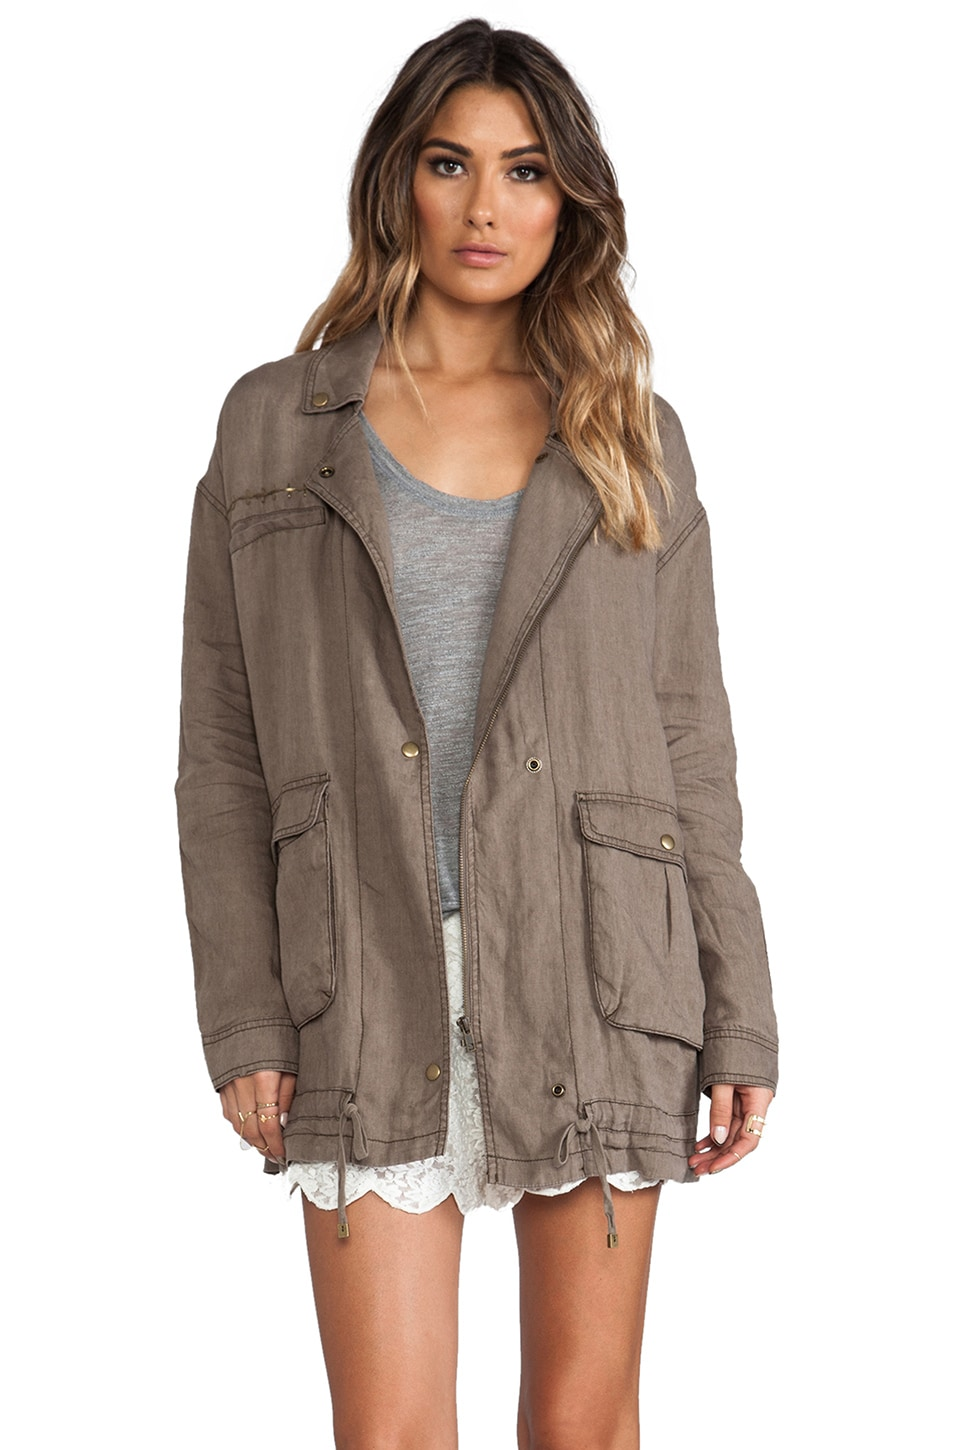 Free People Rugged Embroidered Twill Jacket in French Olive